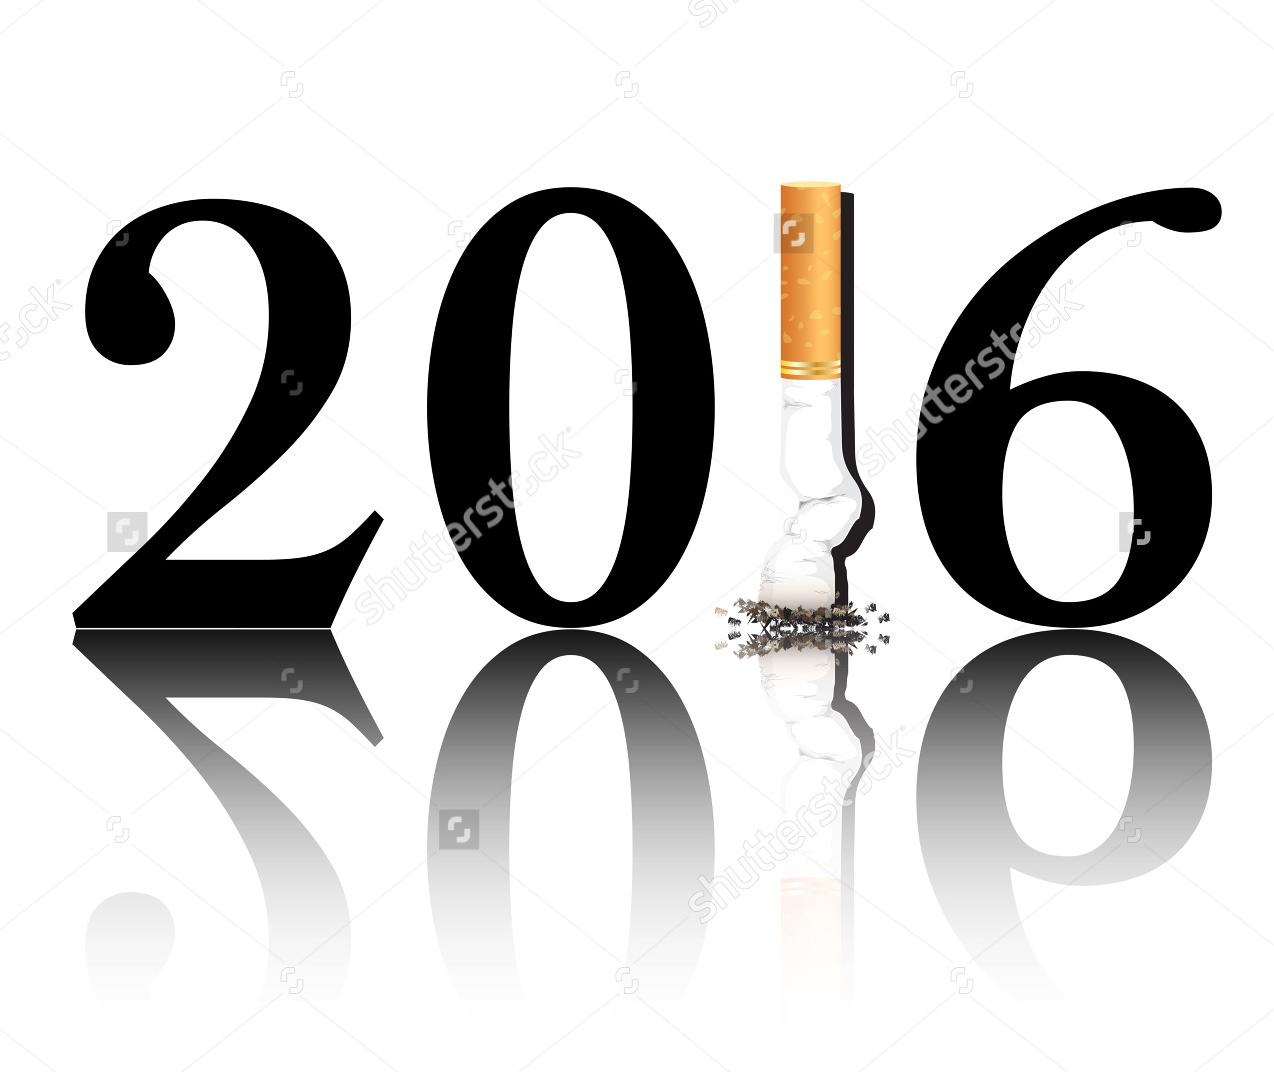 stock-photo-new-year-s-resolution-quit-smoking-concept-with-the-in-being-replaced-by-a-stubbed-out-308568830